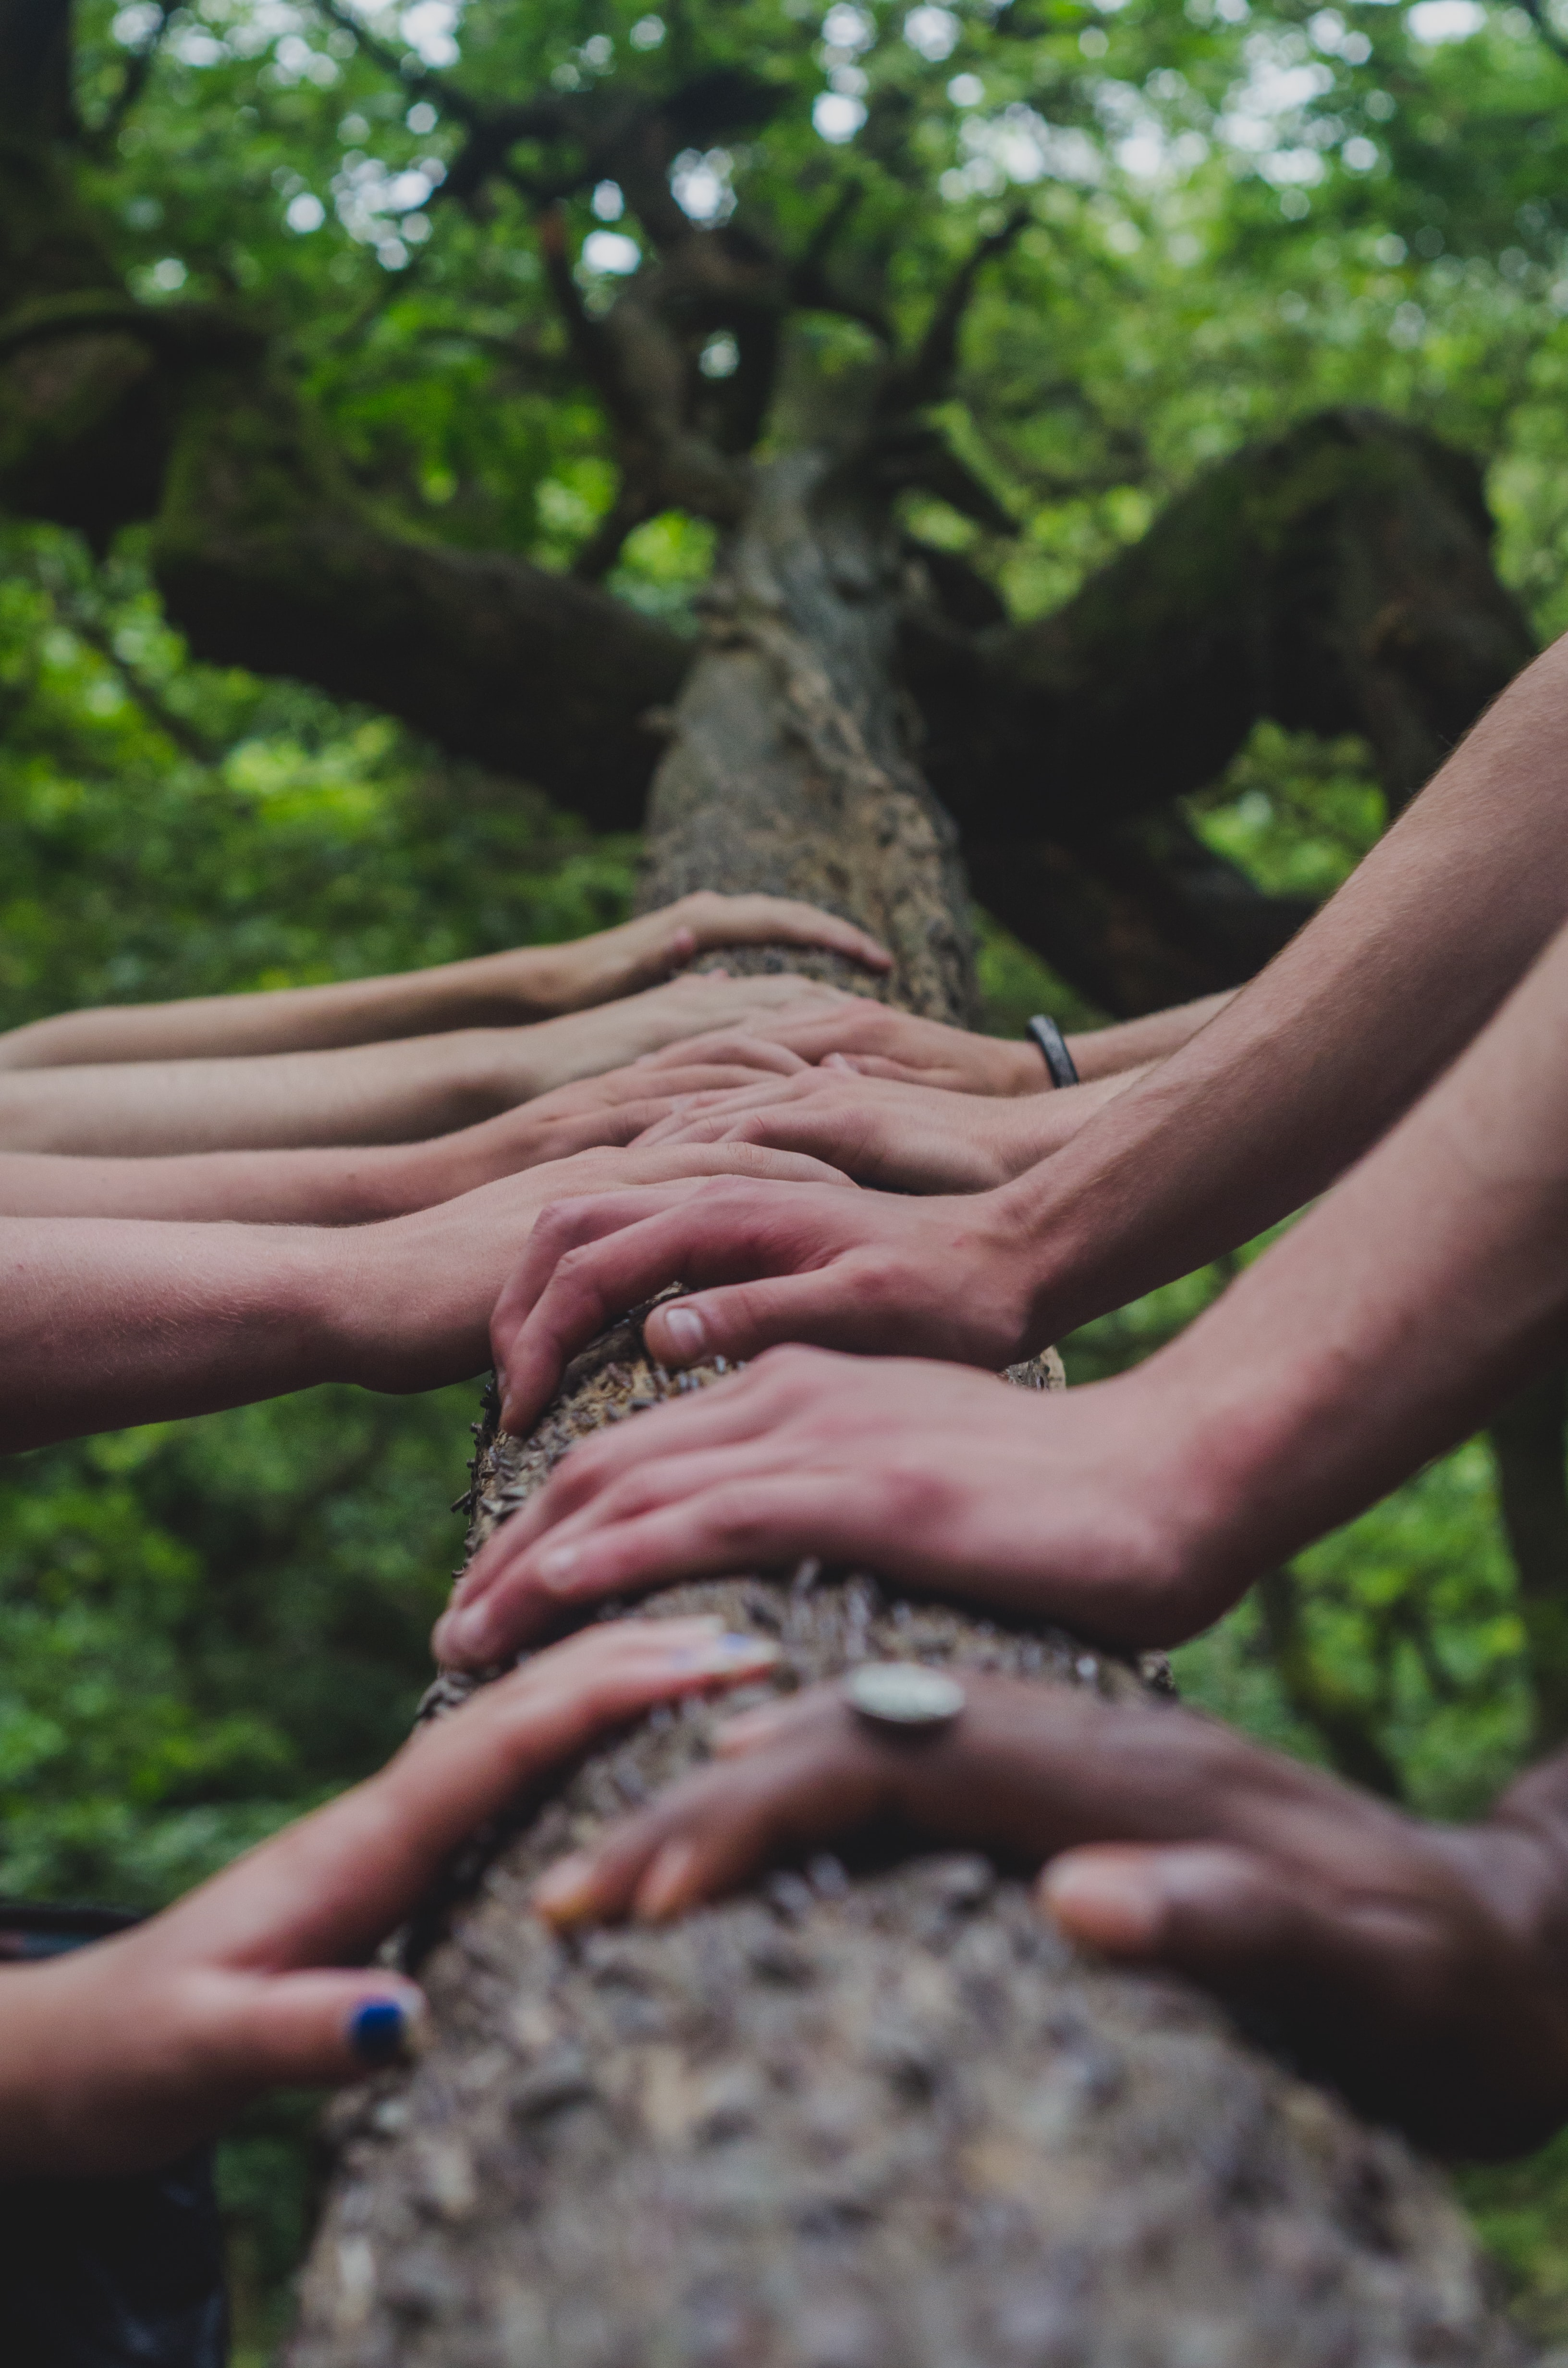 Hands on a tree branch